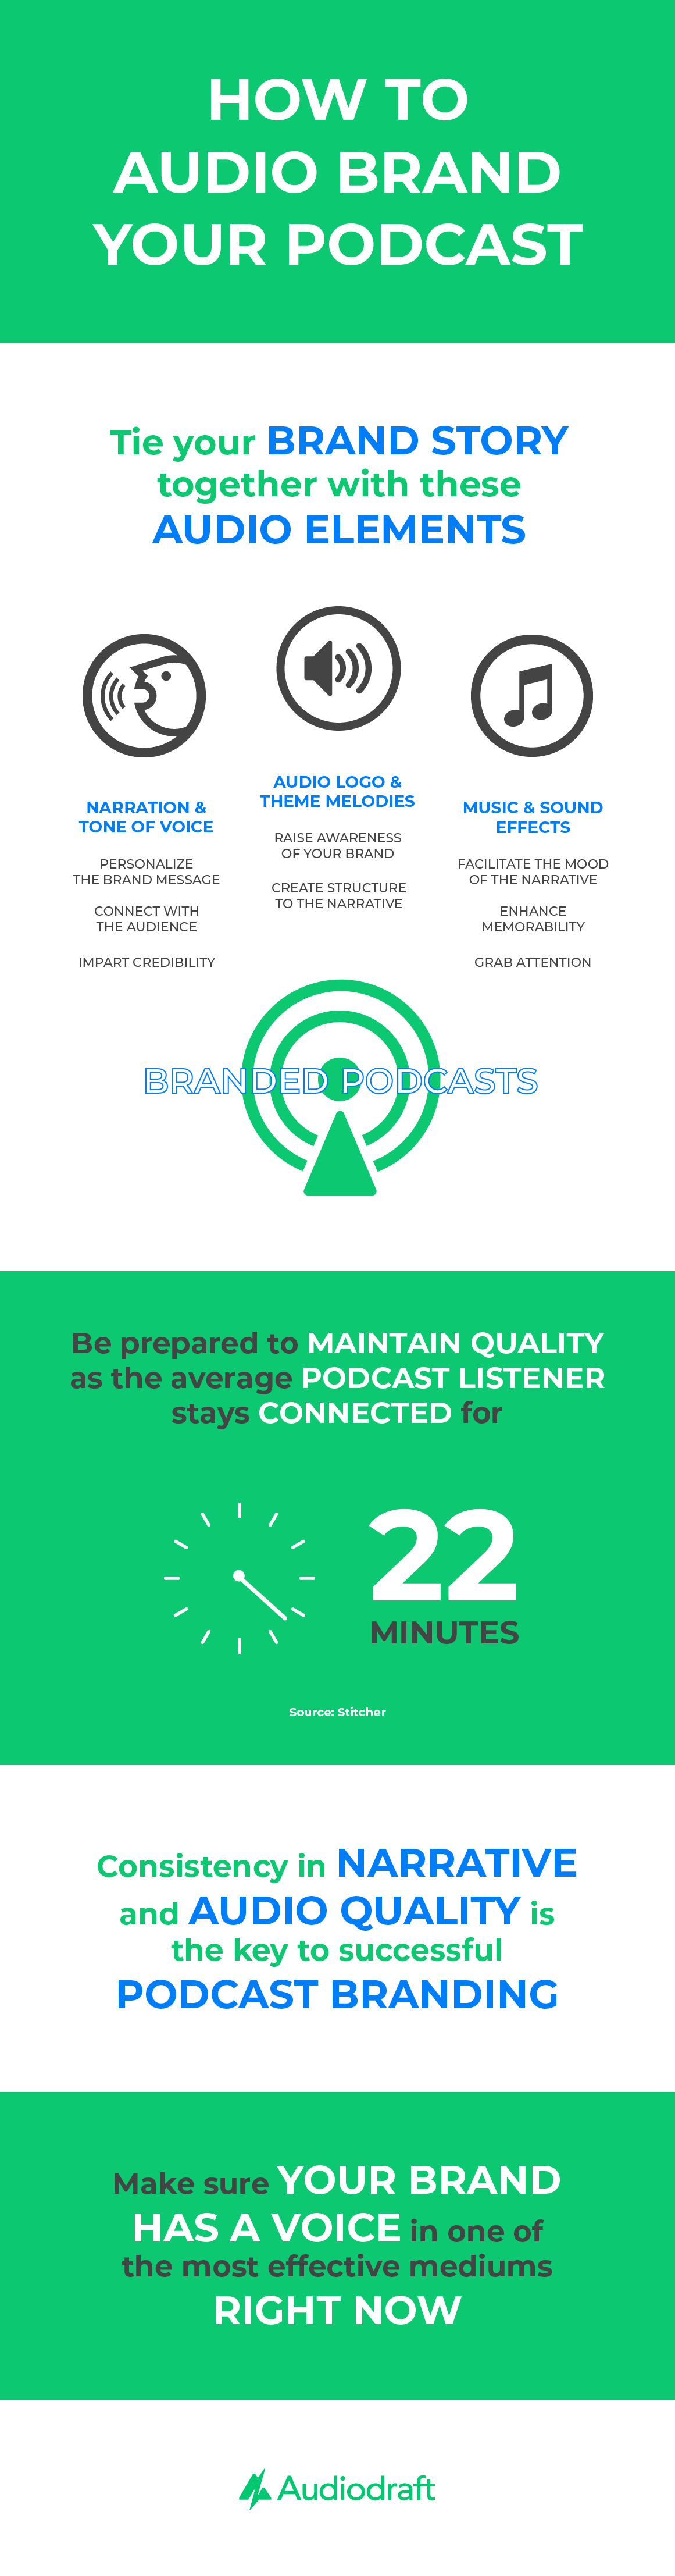 How to audio brand your podcast